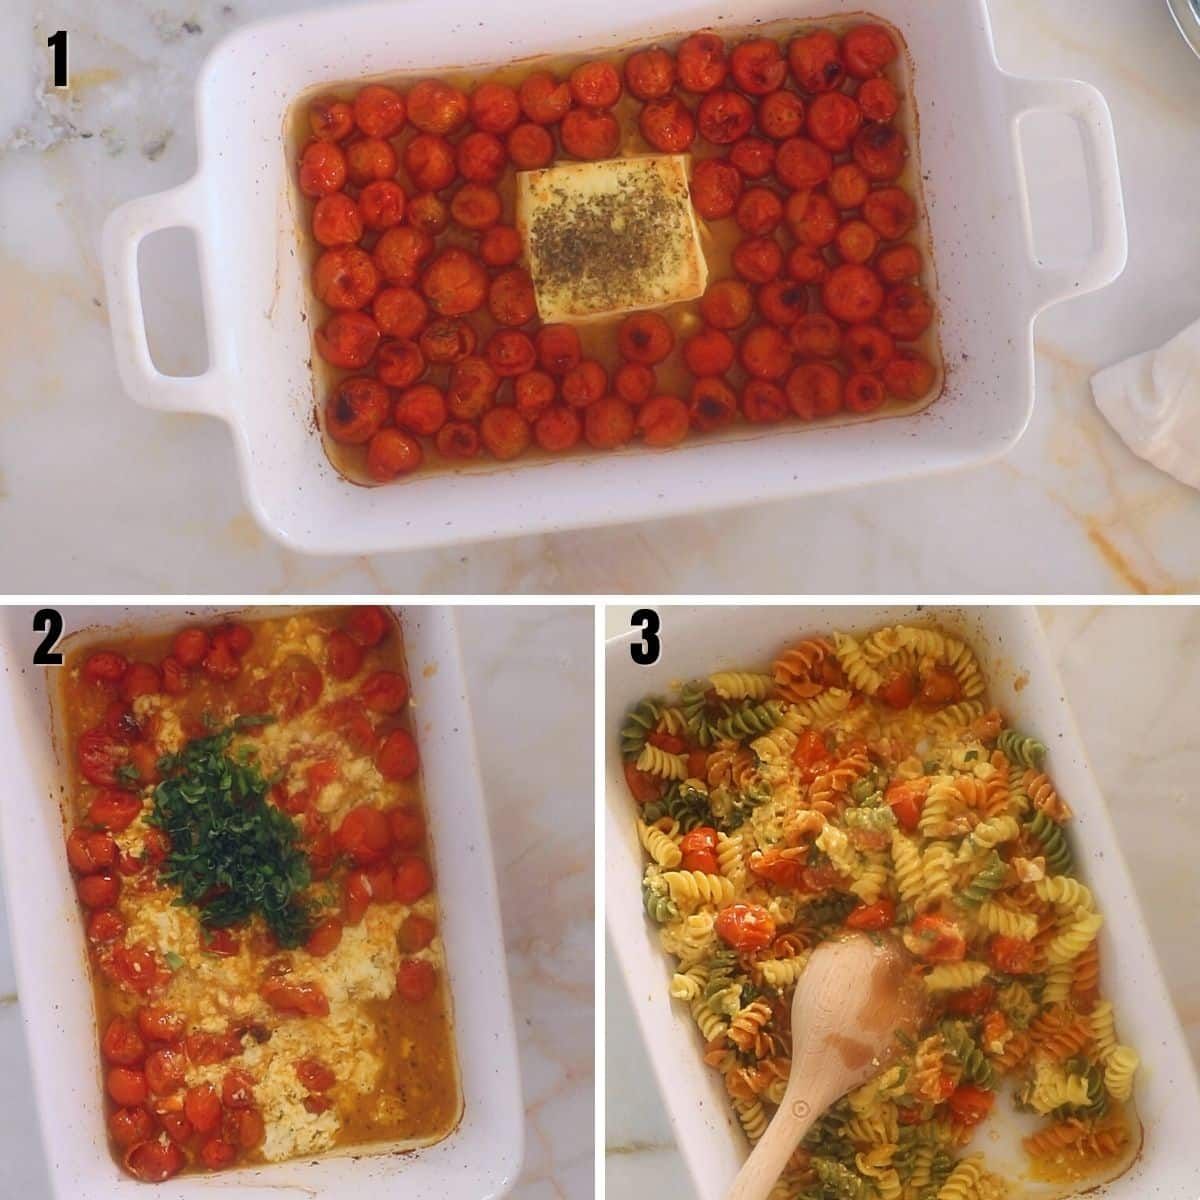 A collage of three images showing how to finish off feta pasta.